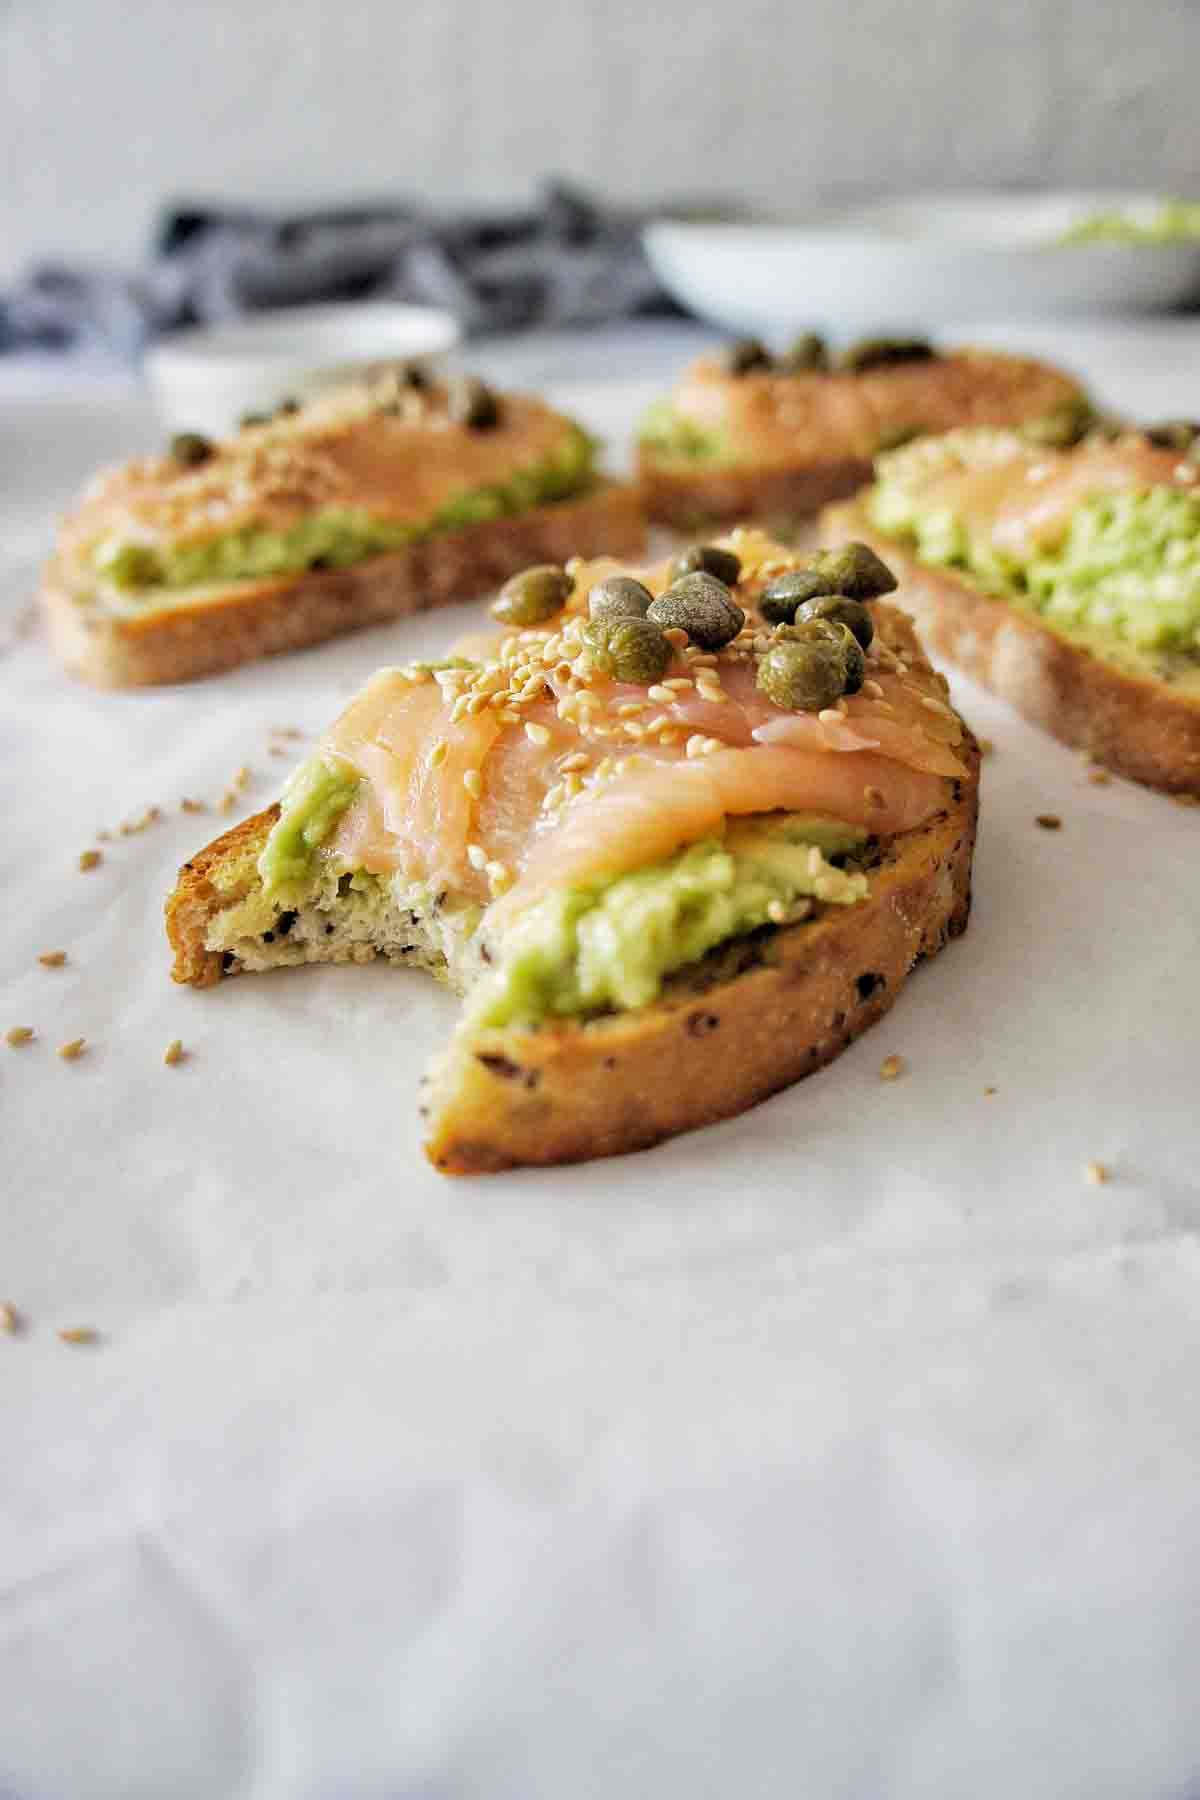 Salmon Avocado Toast with a bite out of it on white background